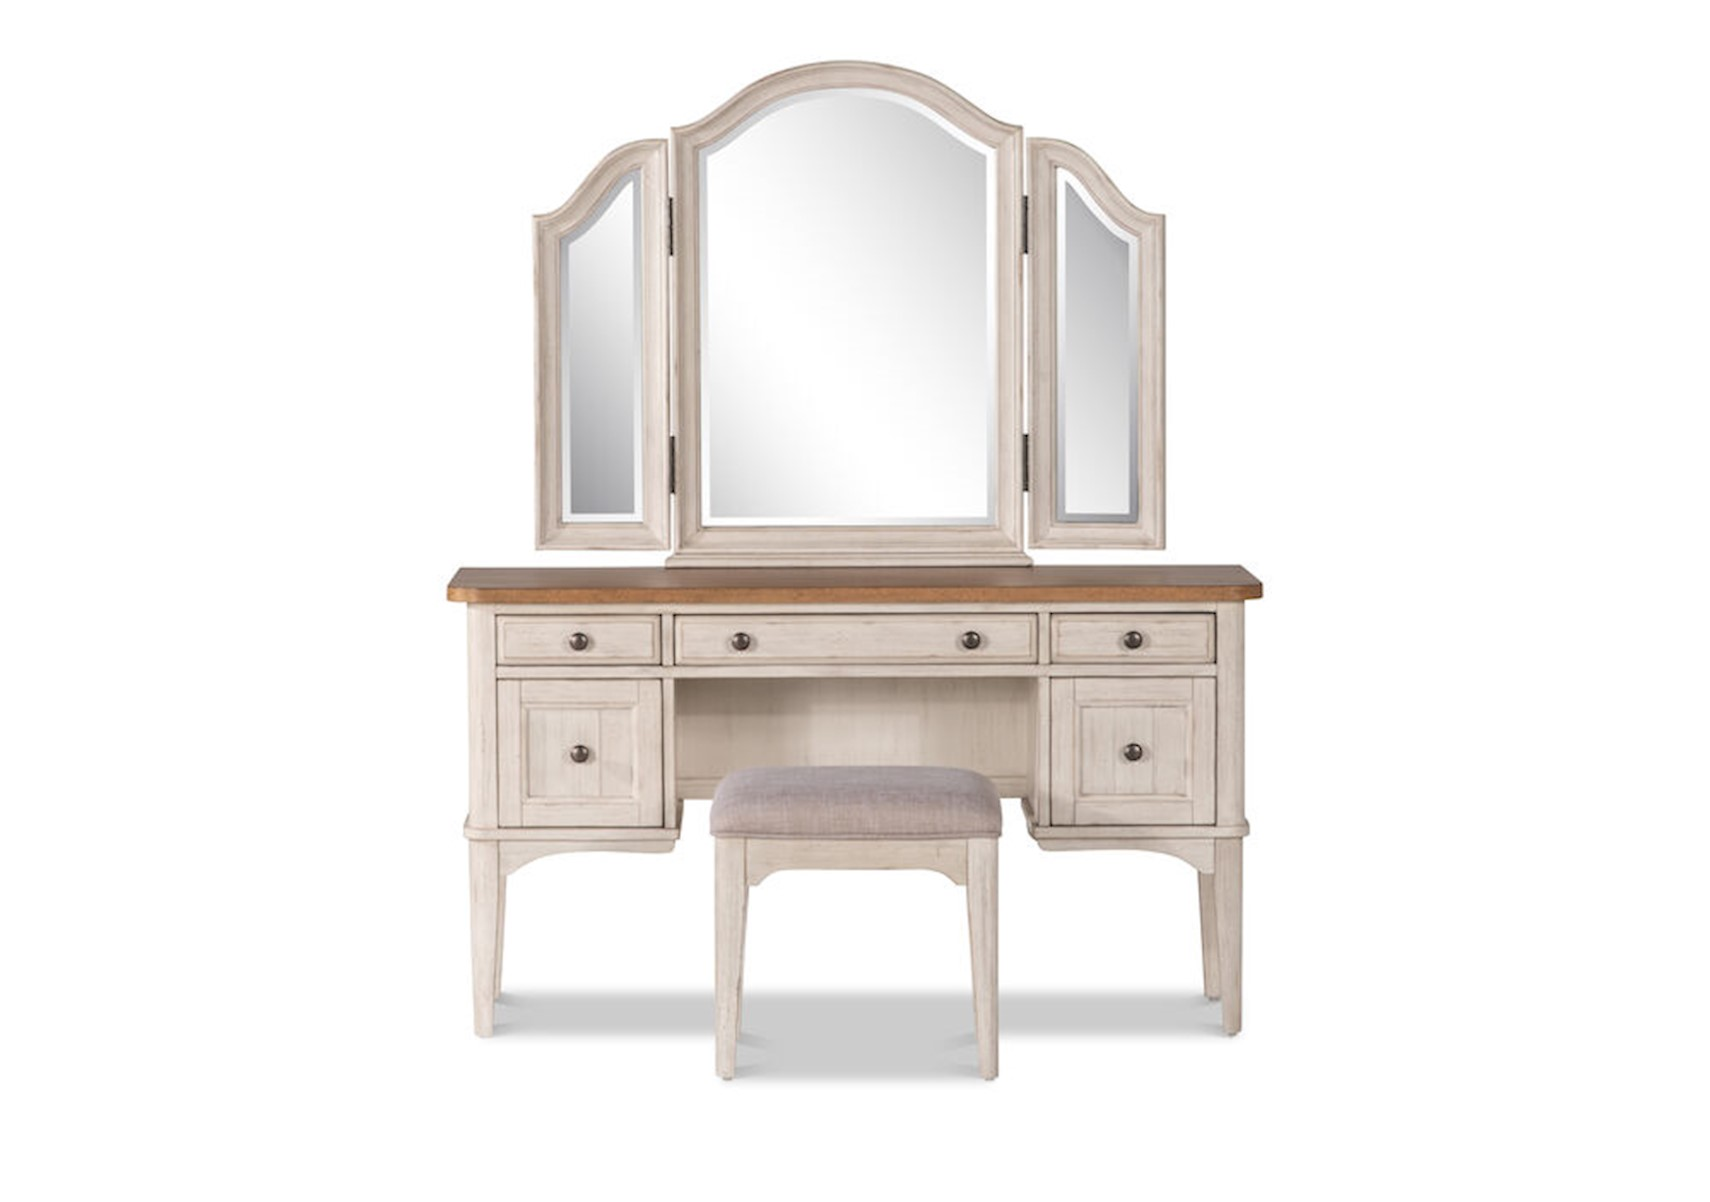 Lacks Farmhouse 3 Pc Vanity Set